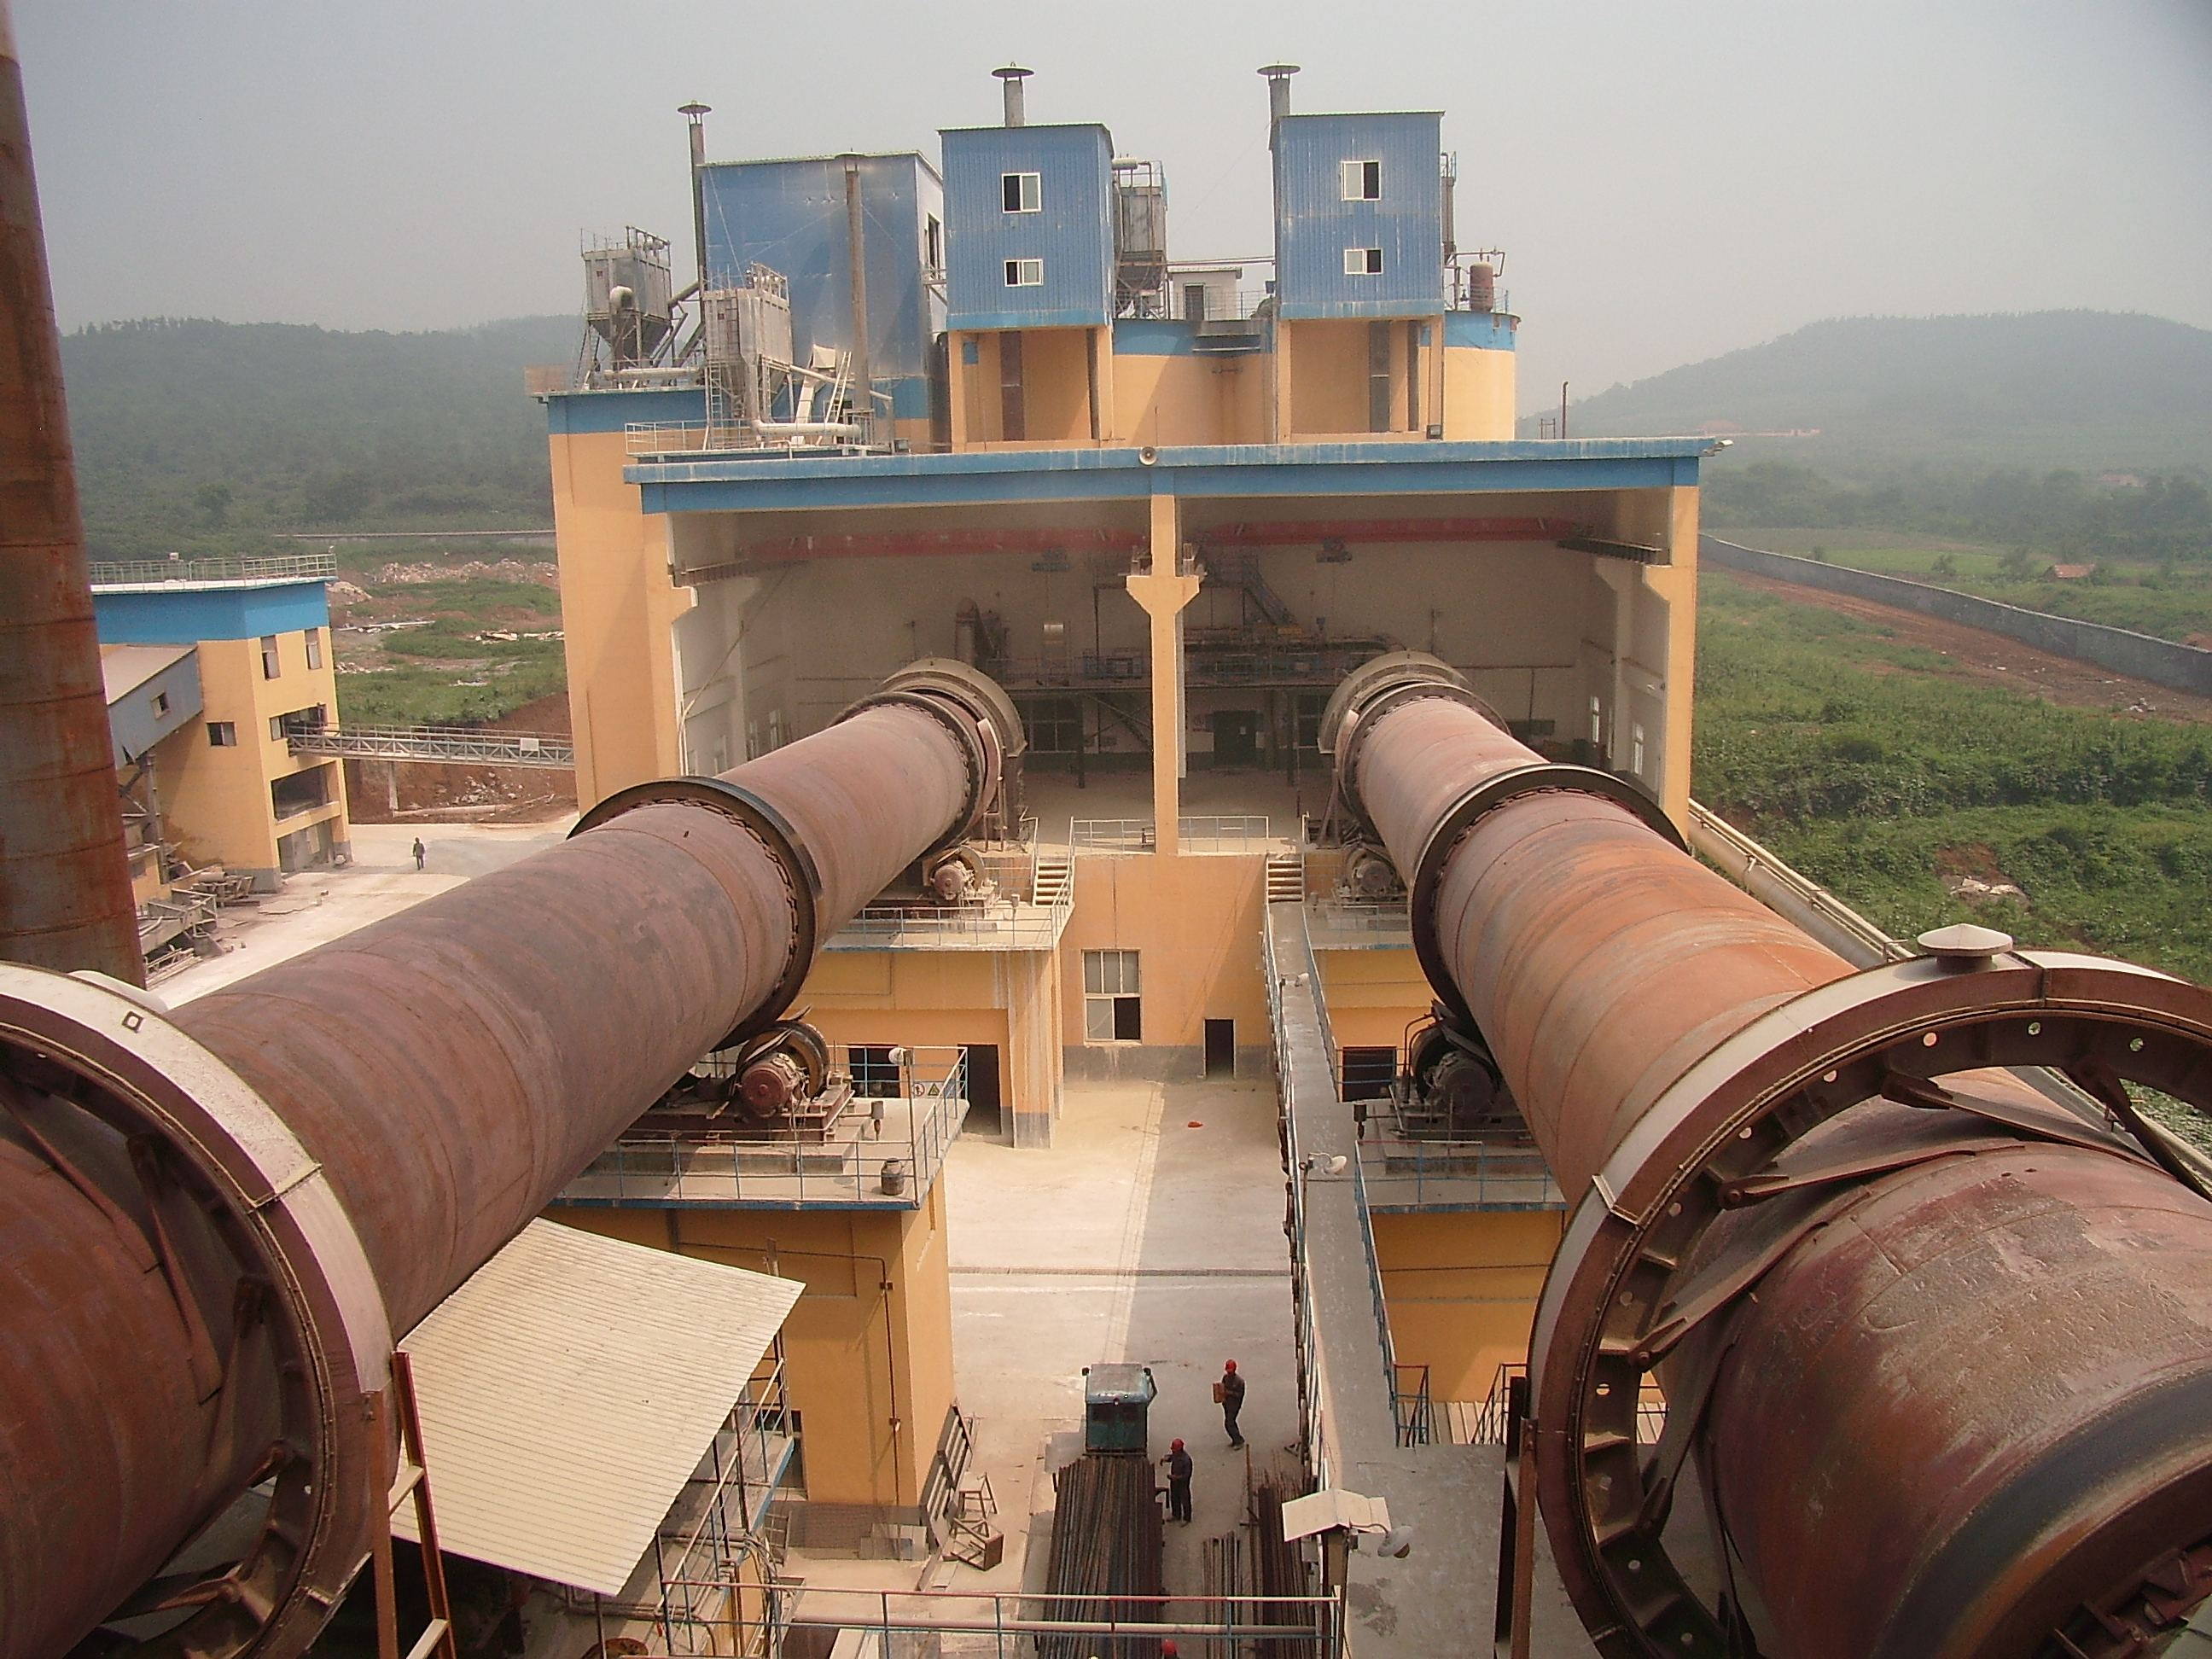 Rotary kiln,metallurgy kiln,cement kiln,